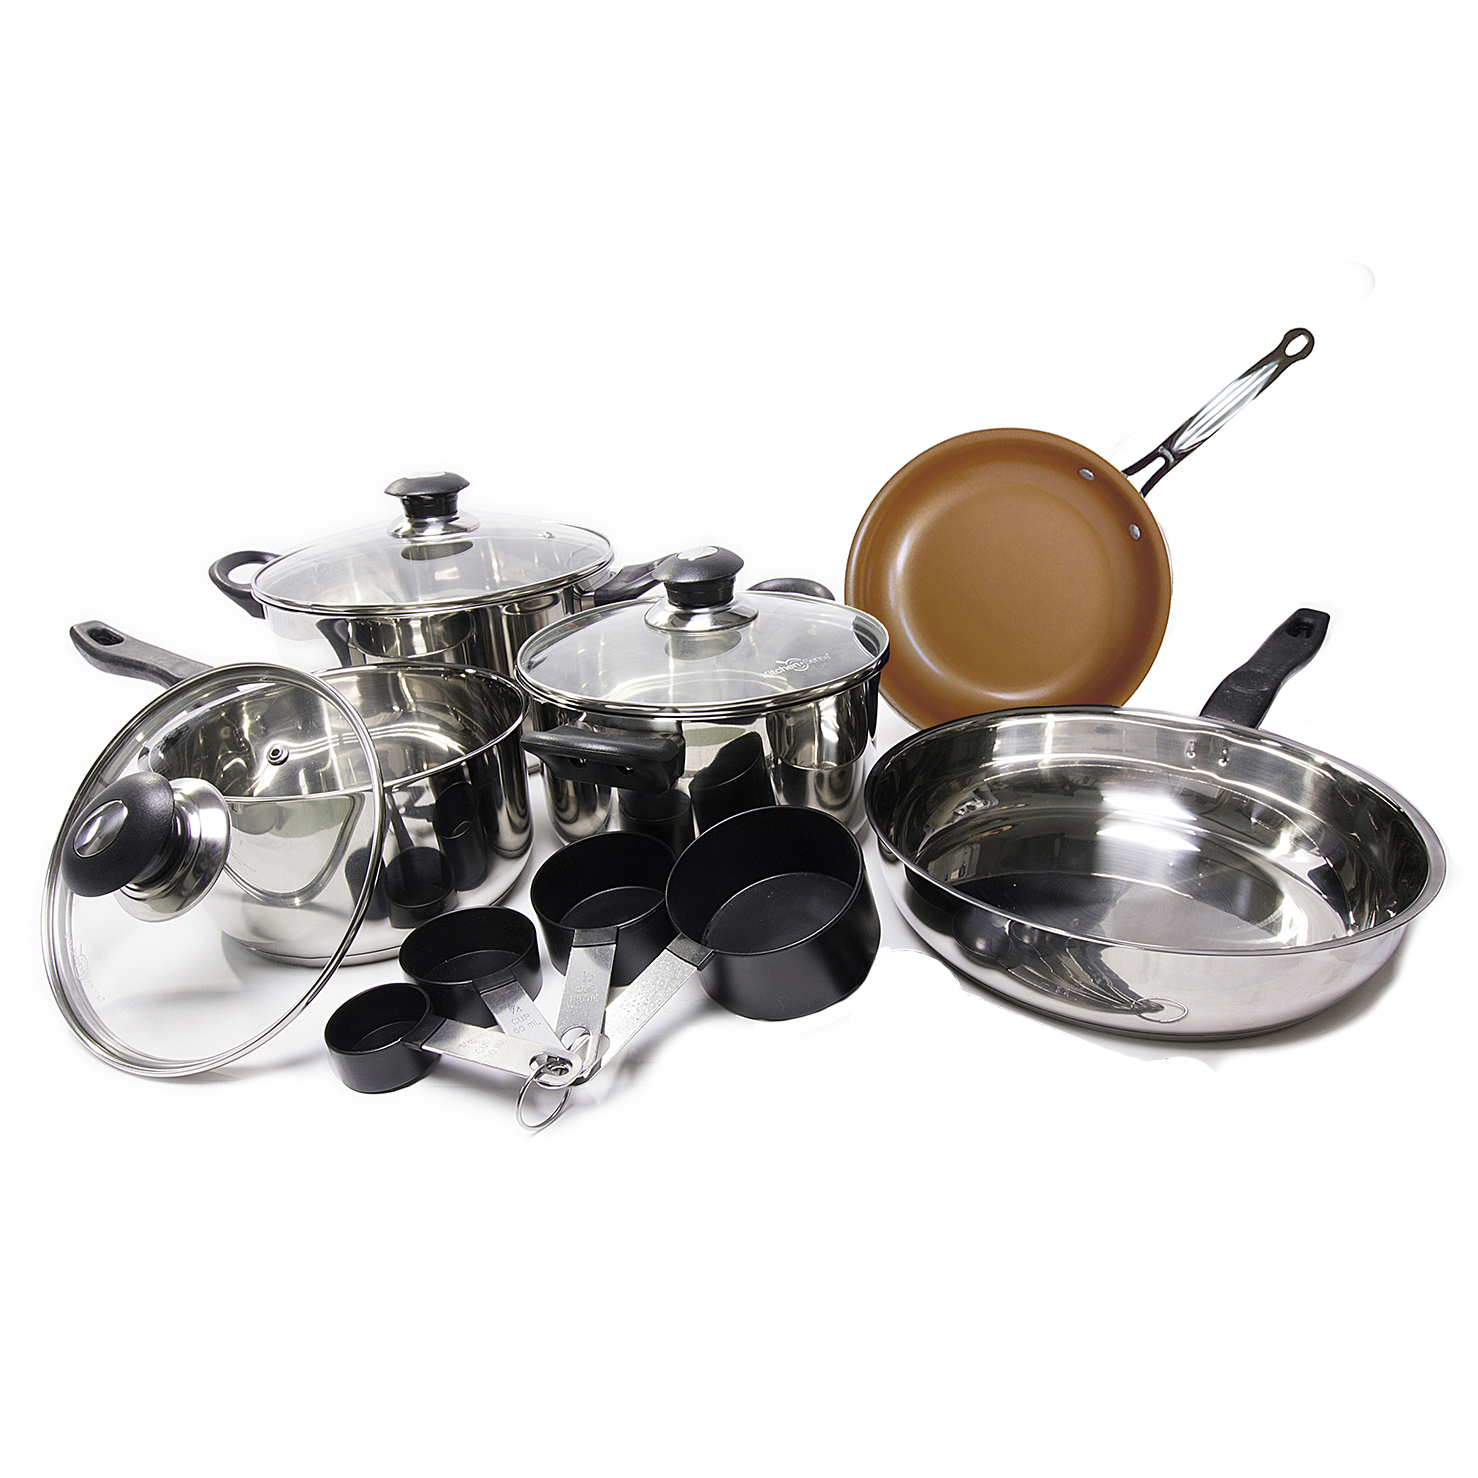 11 Piece Stainless Steel Cookware Set with BONUS Copper Pan 6583290